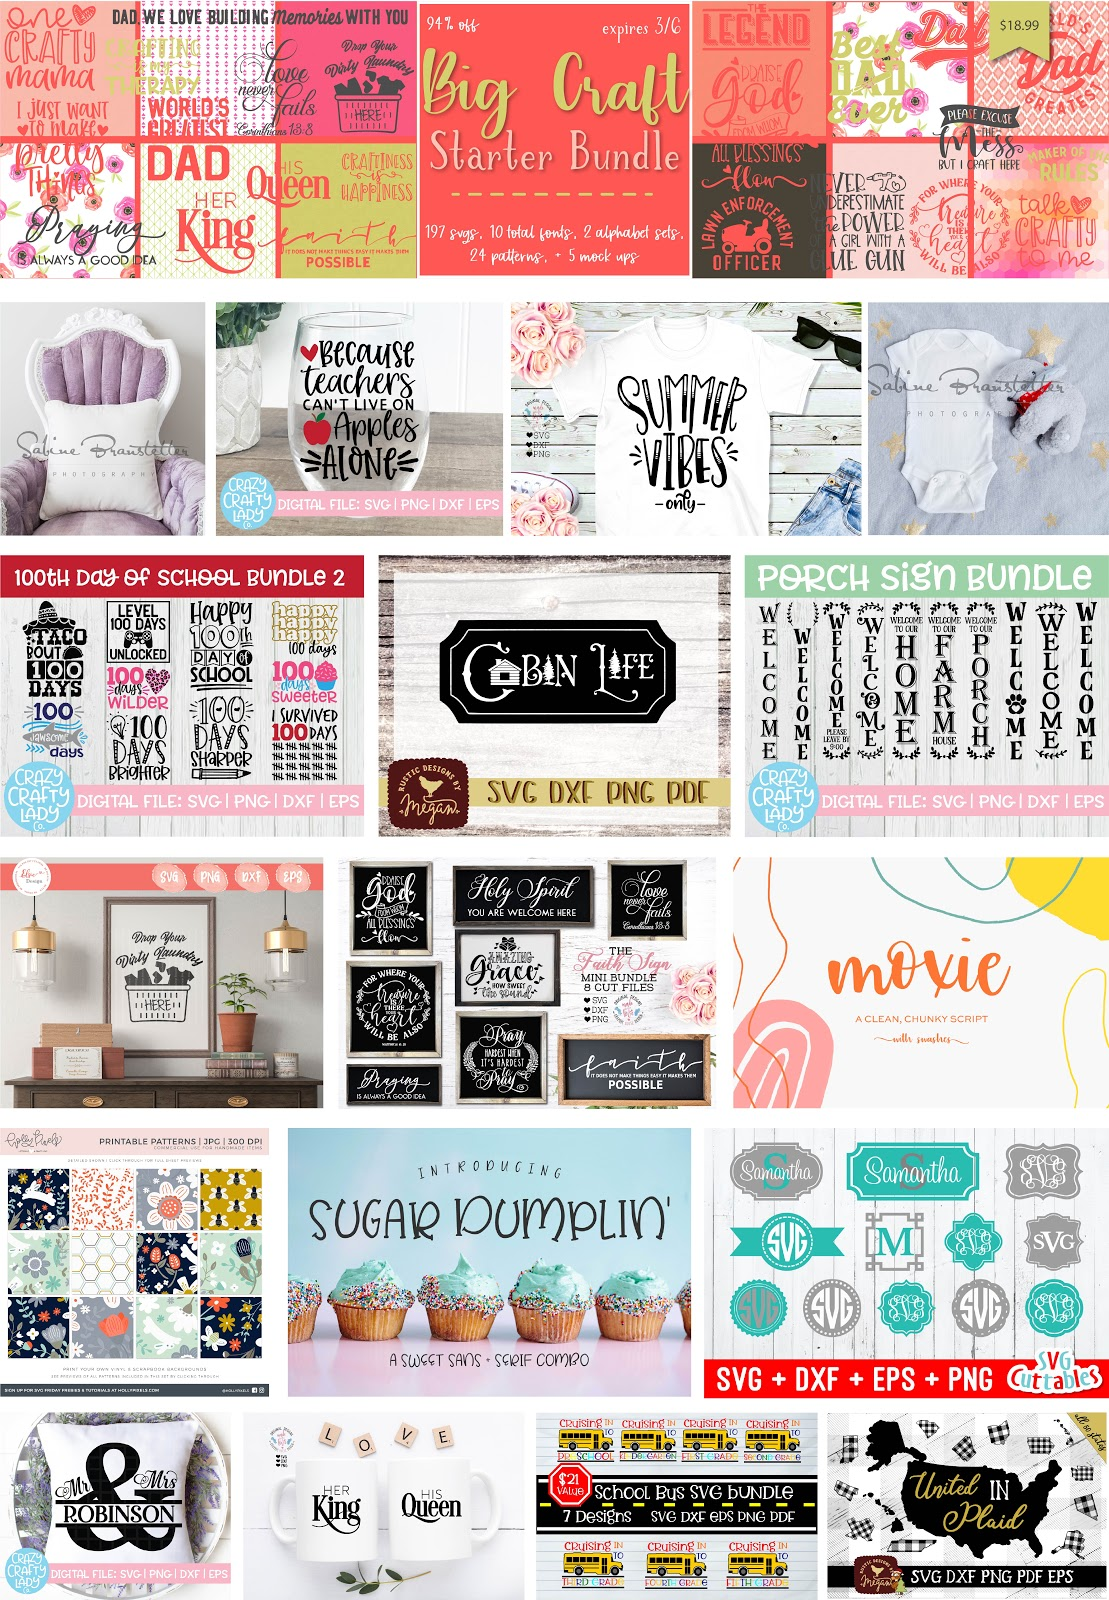 Download Design Bundles For Silhouette File Types To Keep Silhouette School